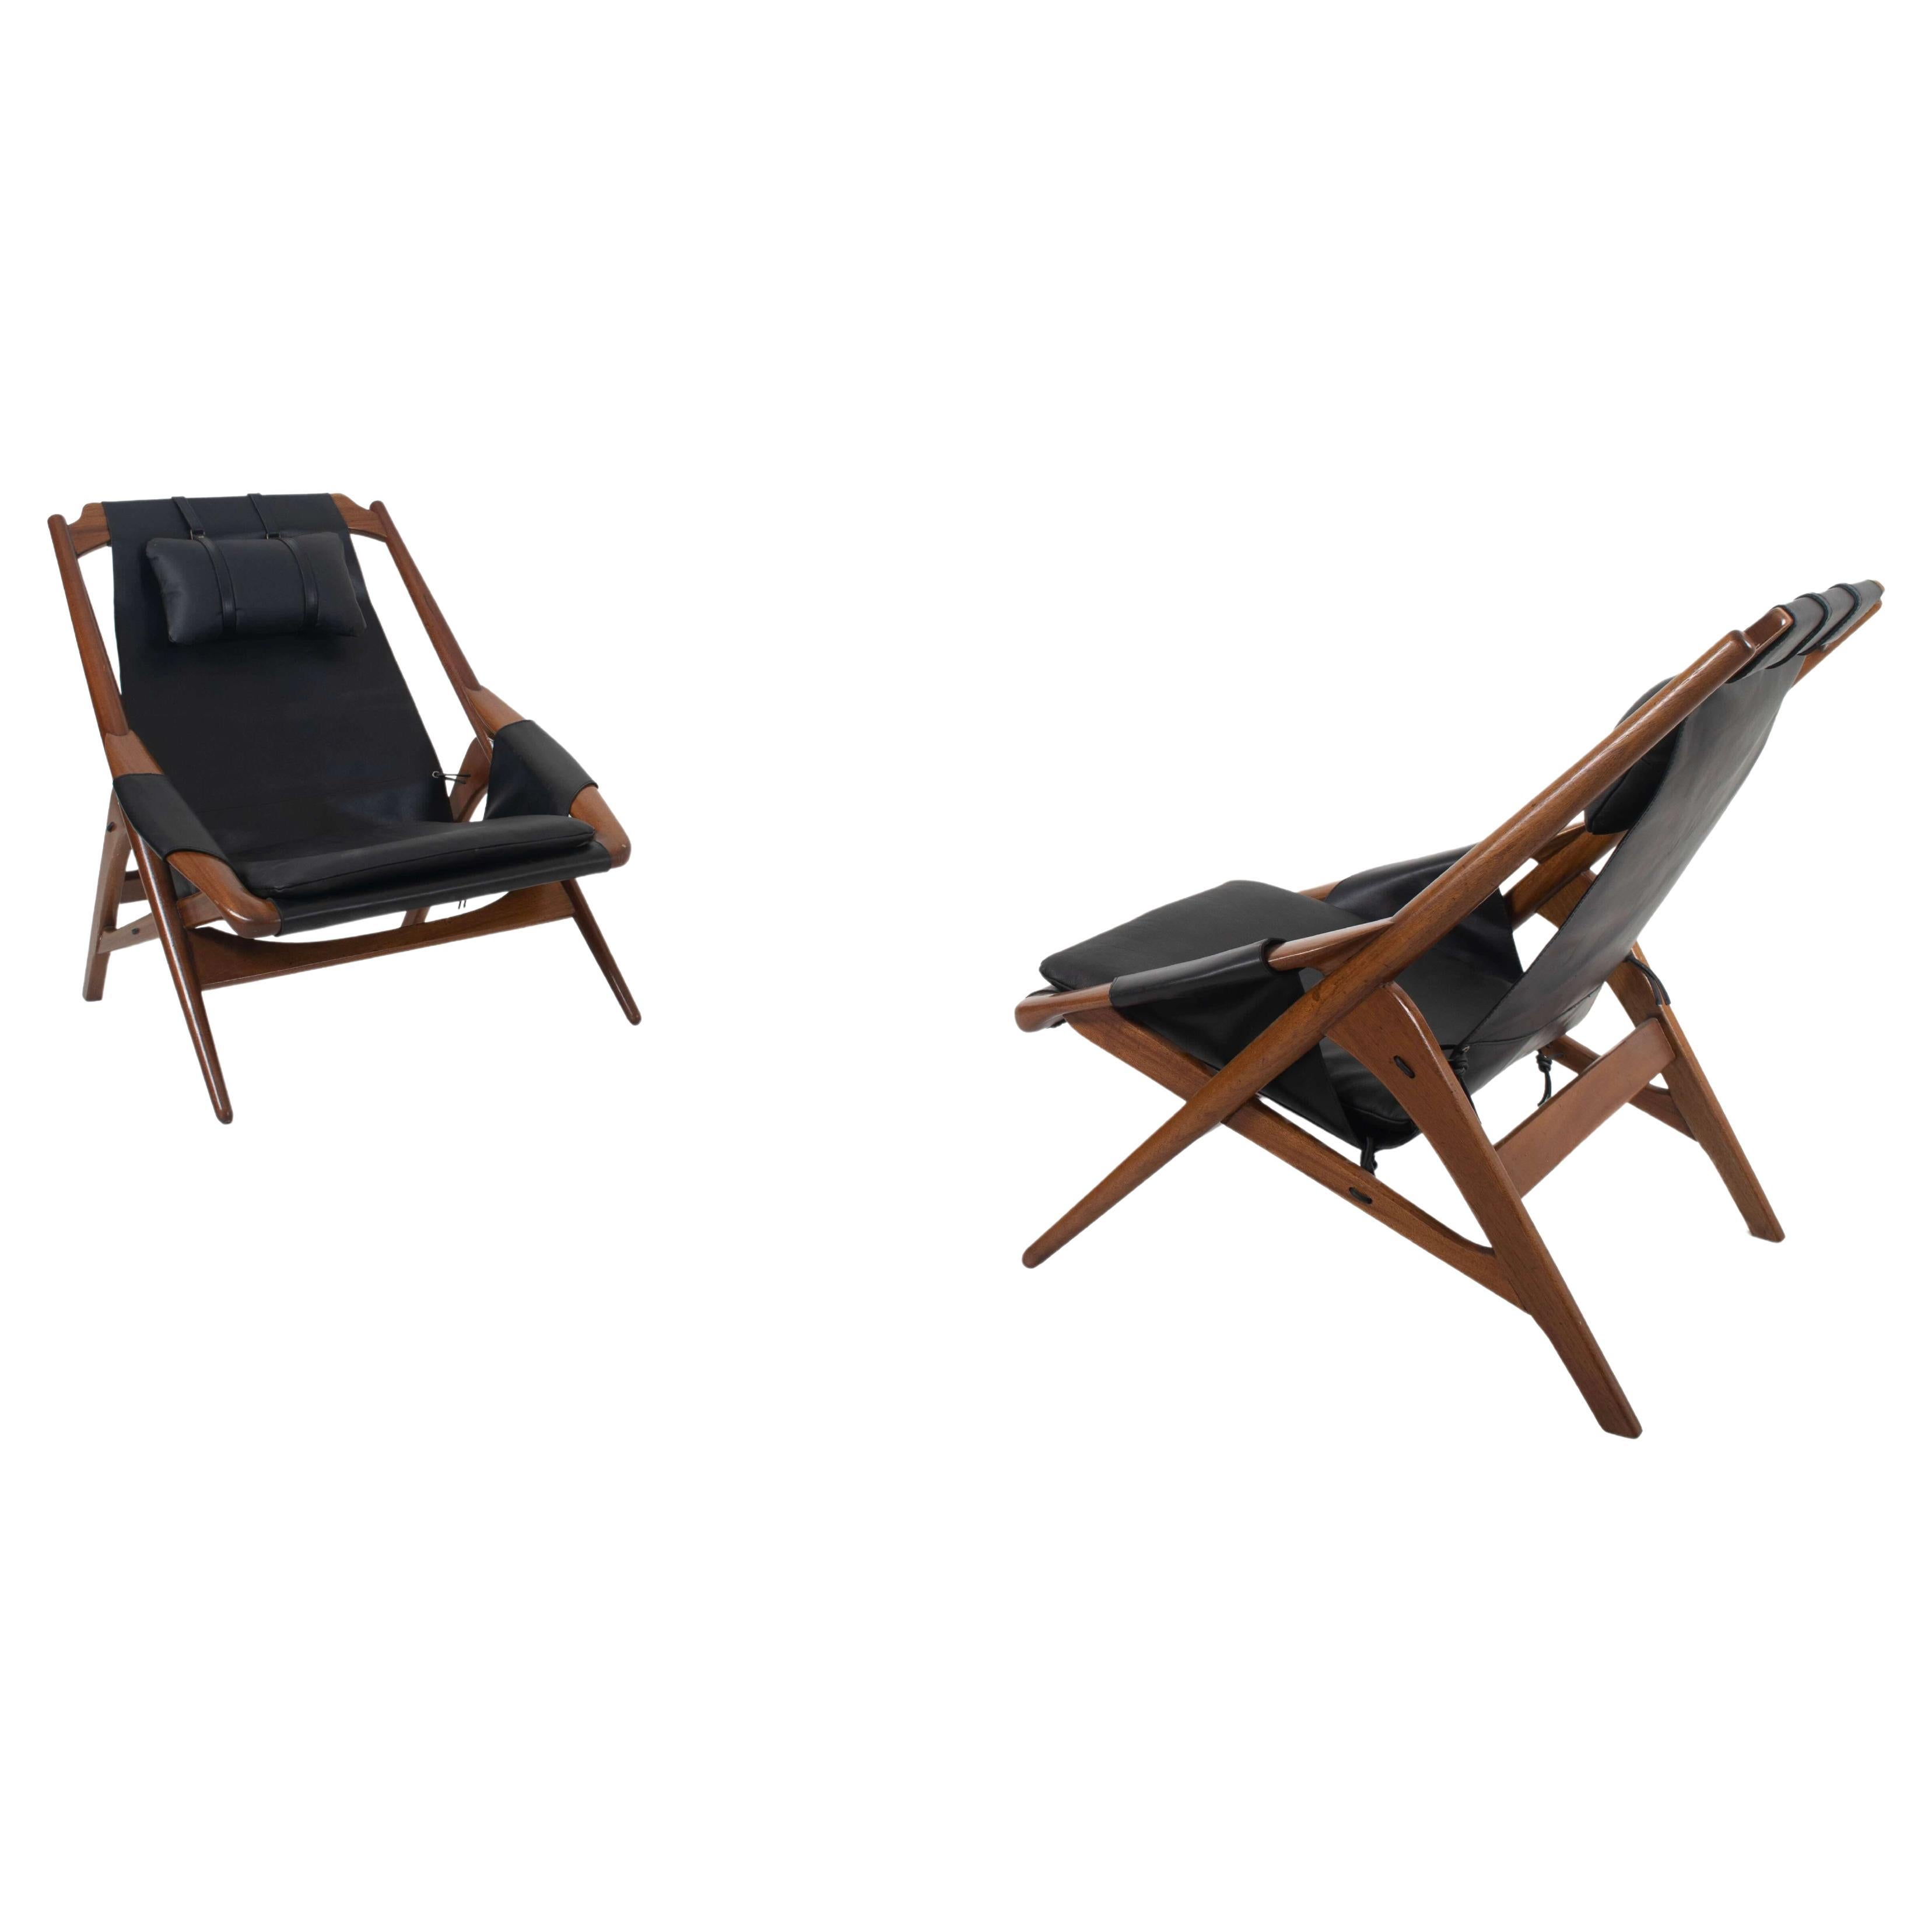 Pair of Black Leather Lounge Chairs by W.D. Andersag, Italy 1960s